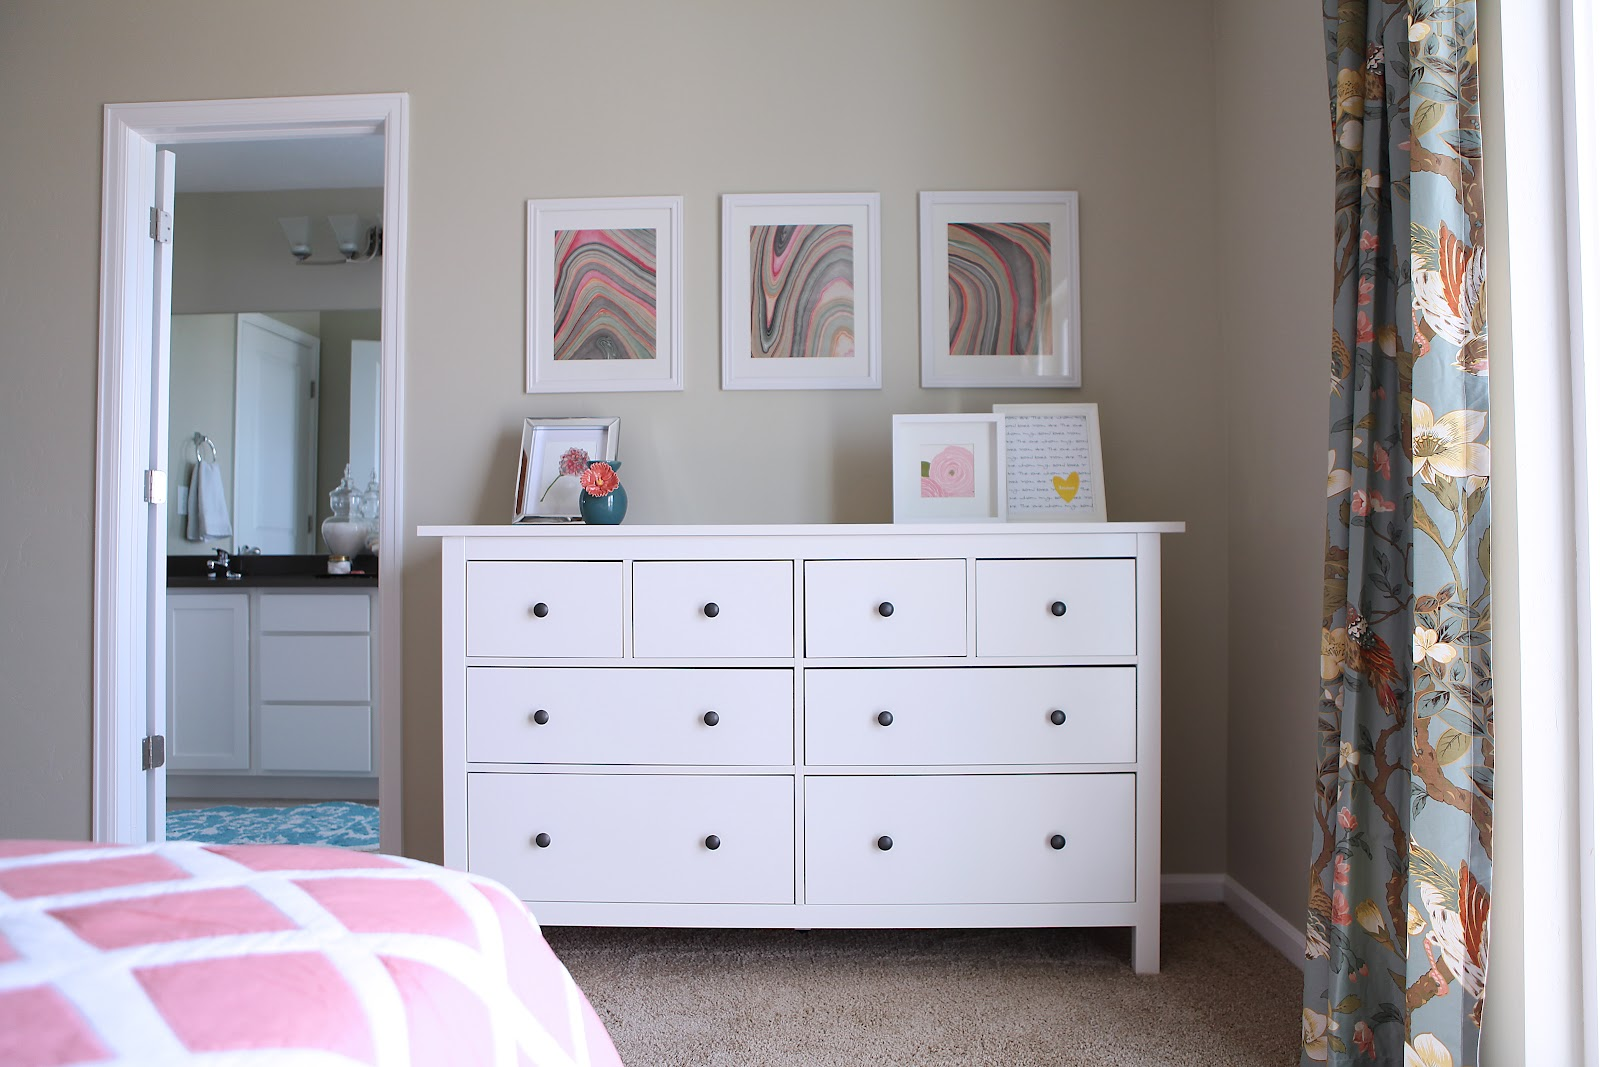 ikea-white-hemnes-bedroom-furniture-photo-7